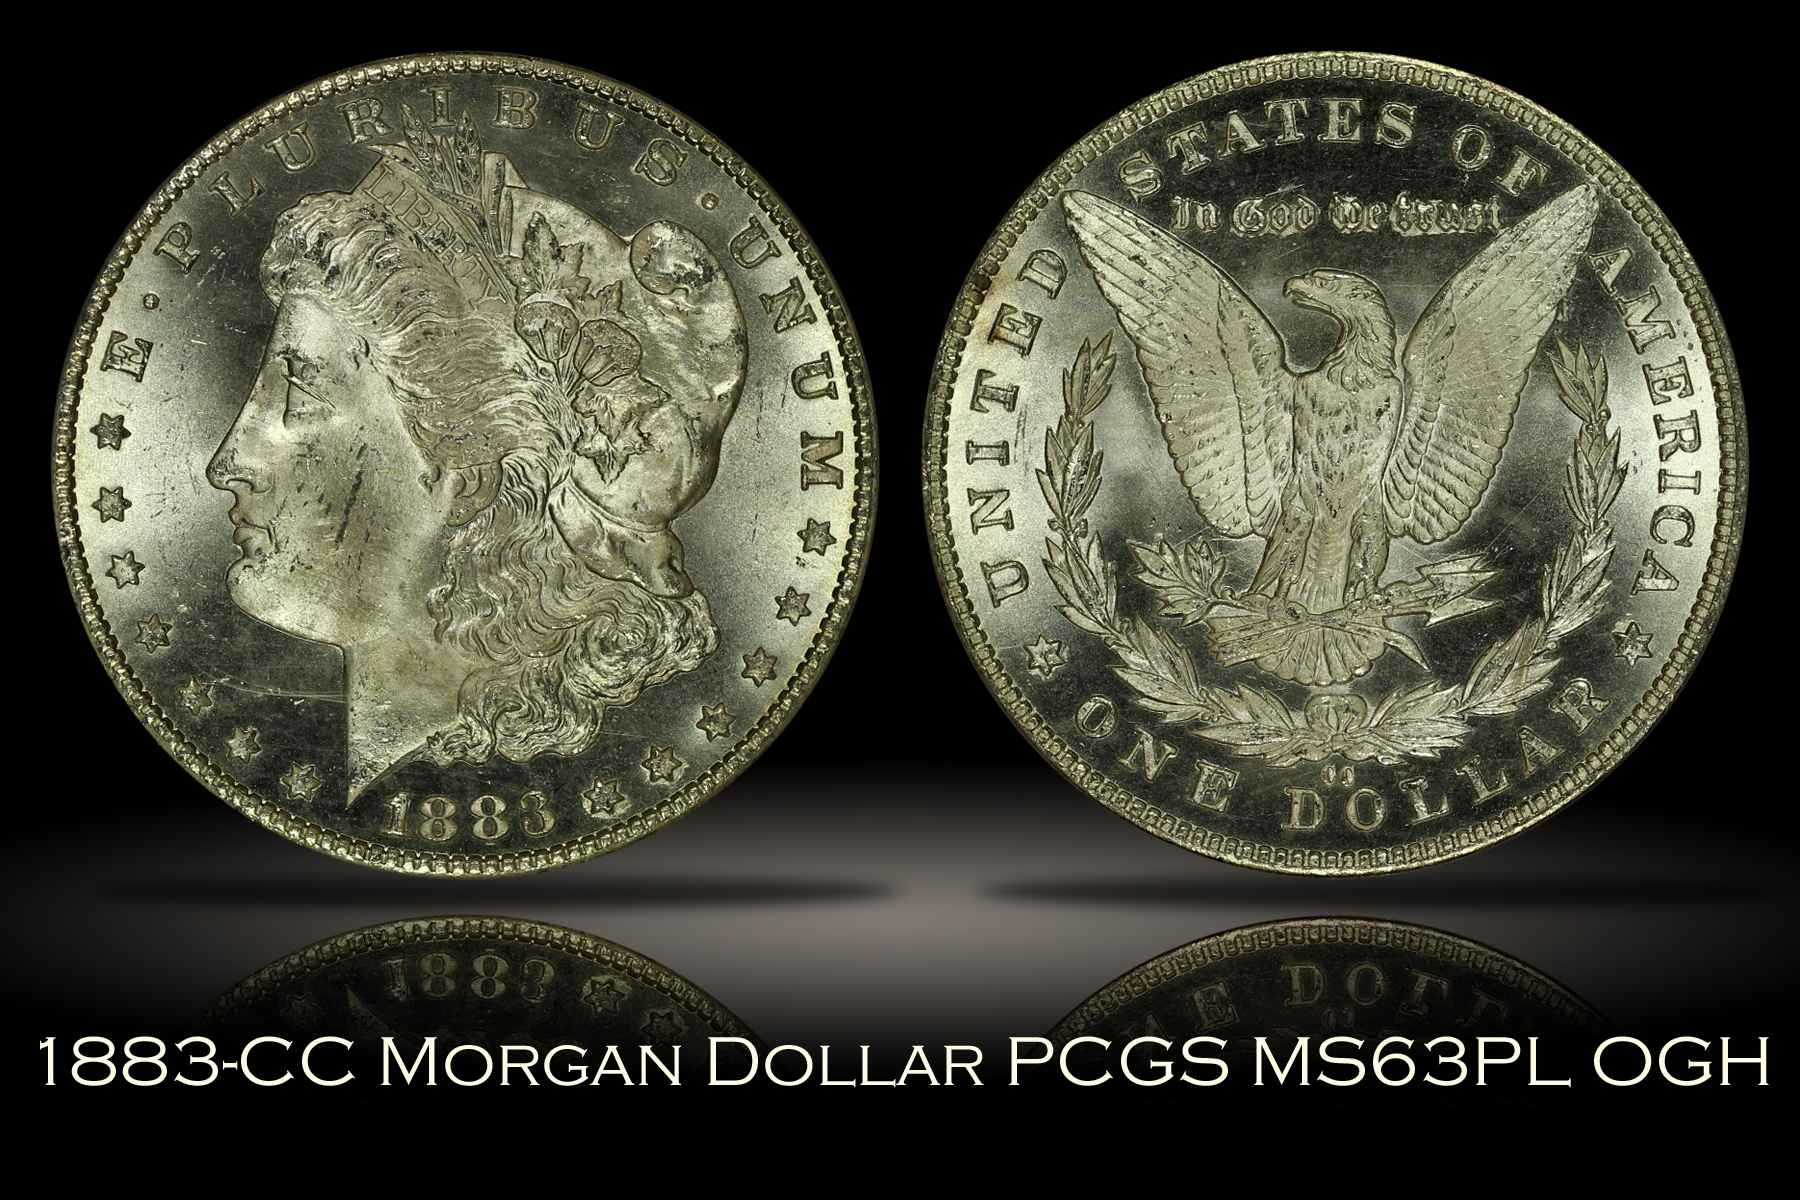 1883-CC Morgan Dollar PCGS MS63PL